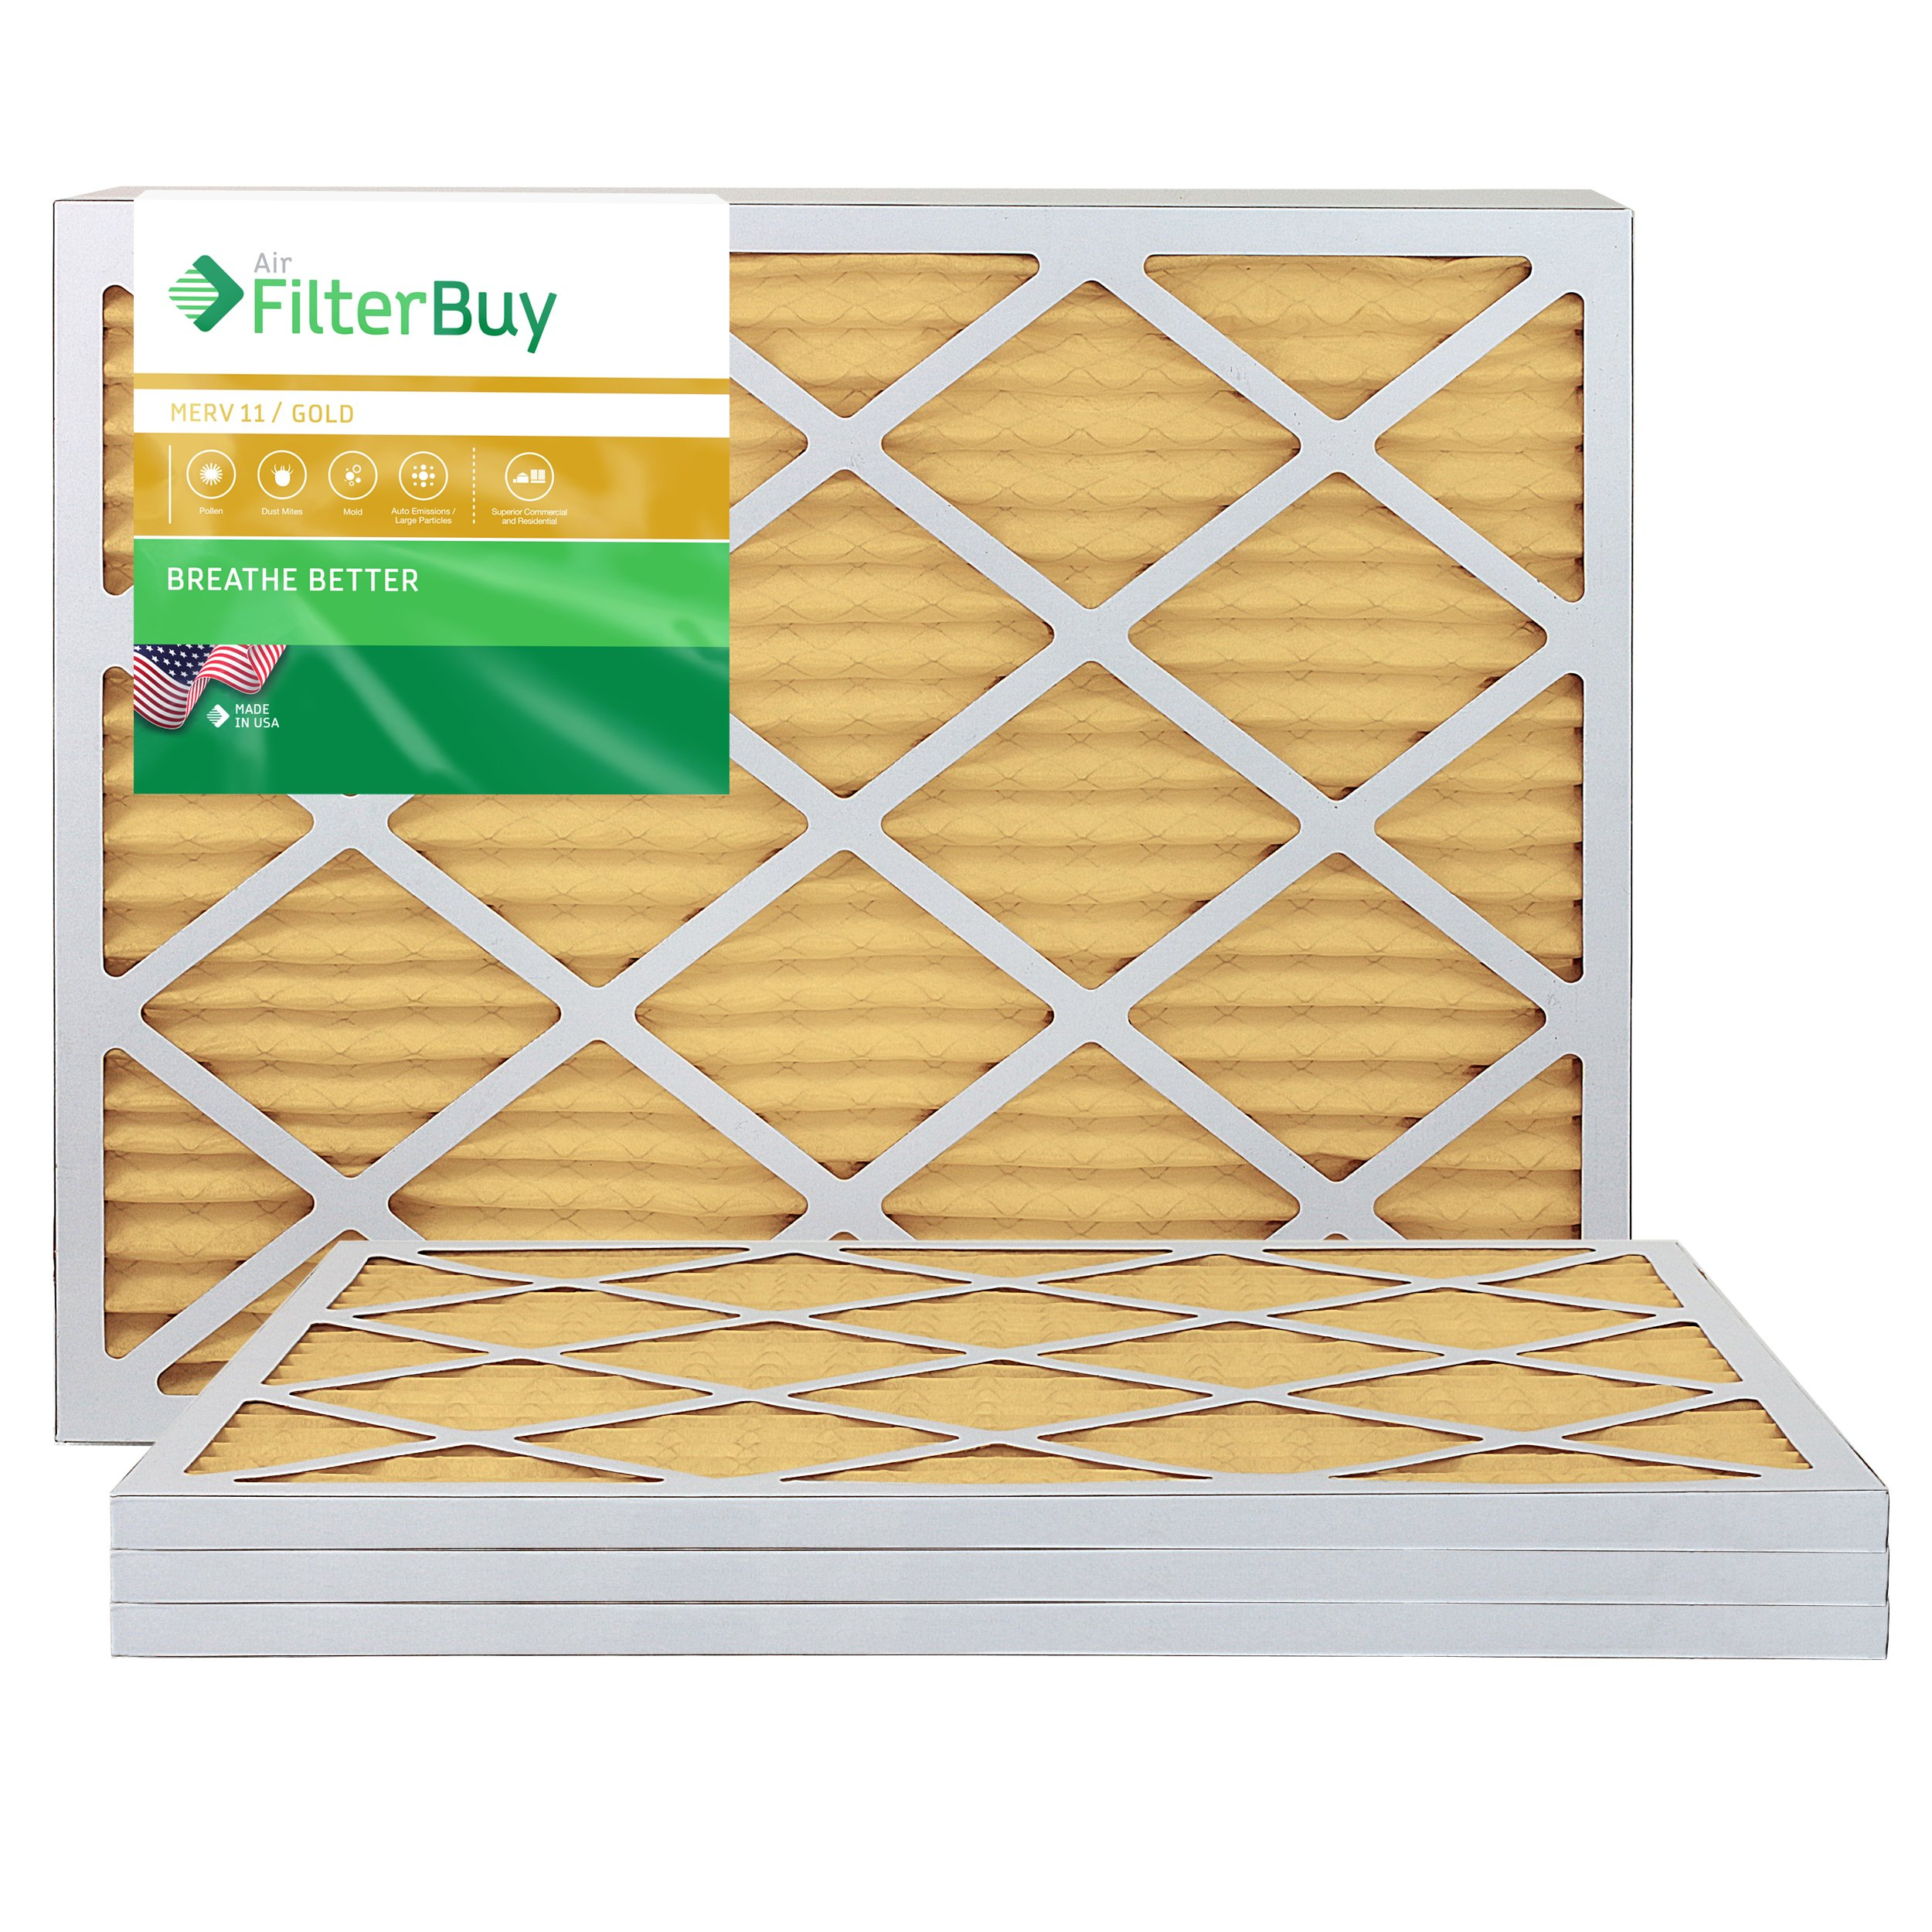 FilterBuy 16x30x1 MERV 11 Pleated AC Furnace Air Filter, (Pack of 4 Filters), 16x30x1 - Gold by FilterBuy